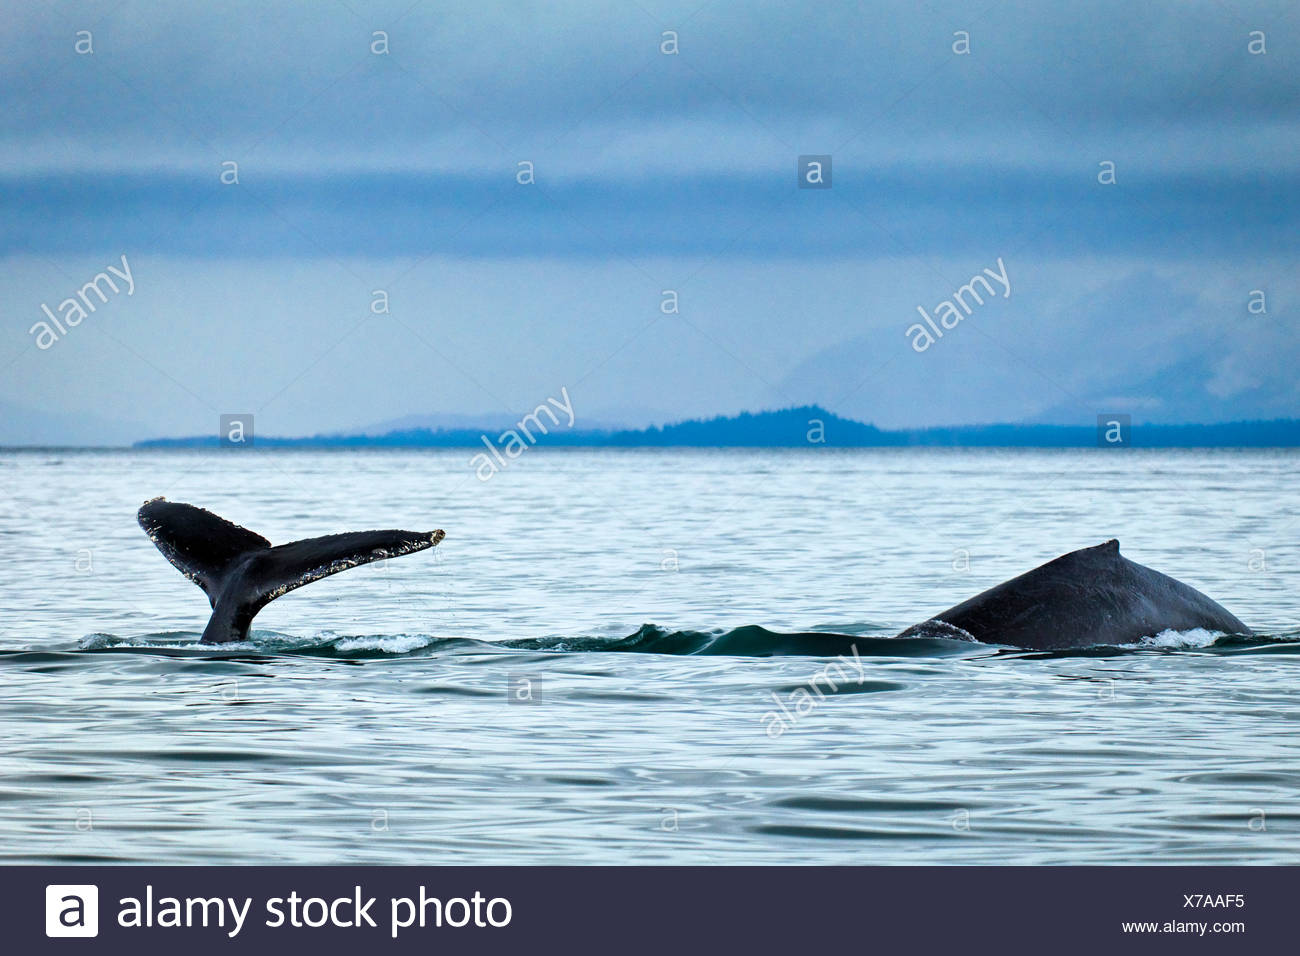 Humpback Whales showing fluke and back fin in Icy Strait, Glacier Bay National Park & Preserve, Inside Passage - Stock Image